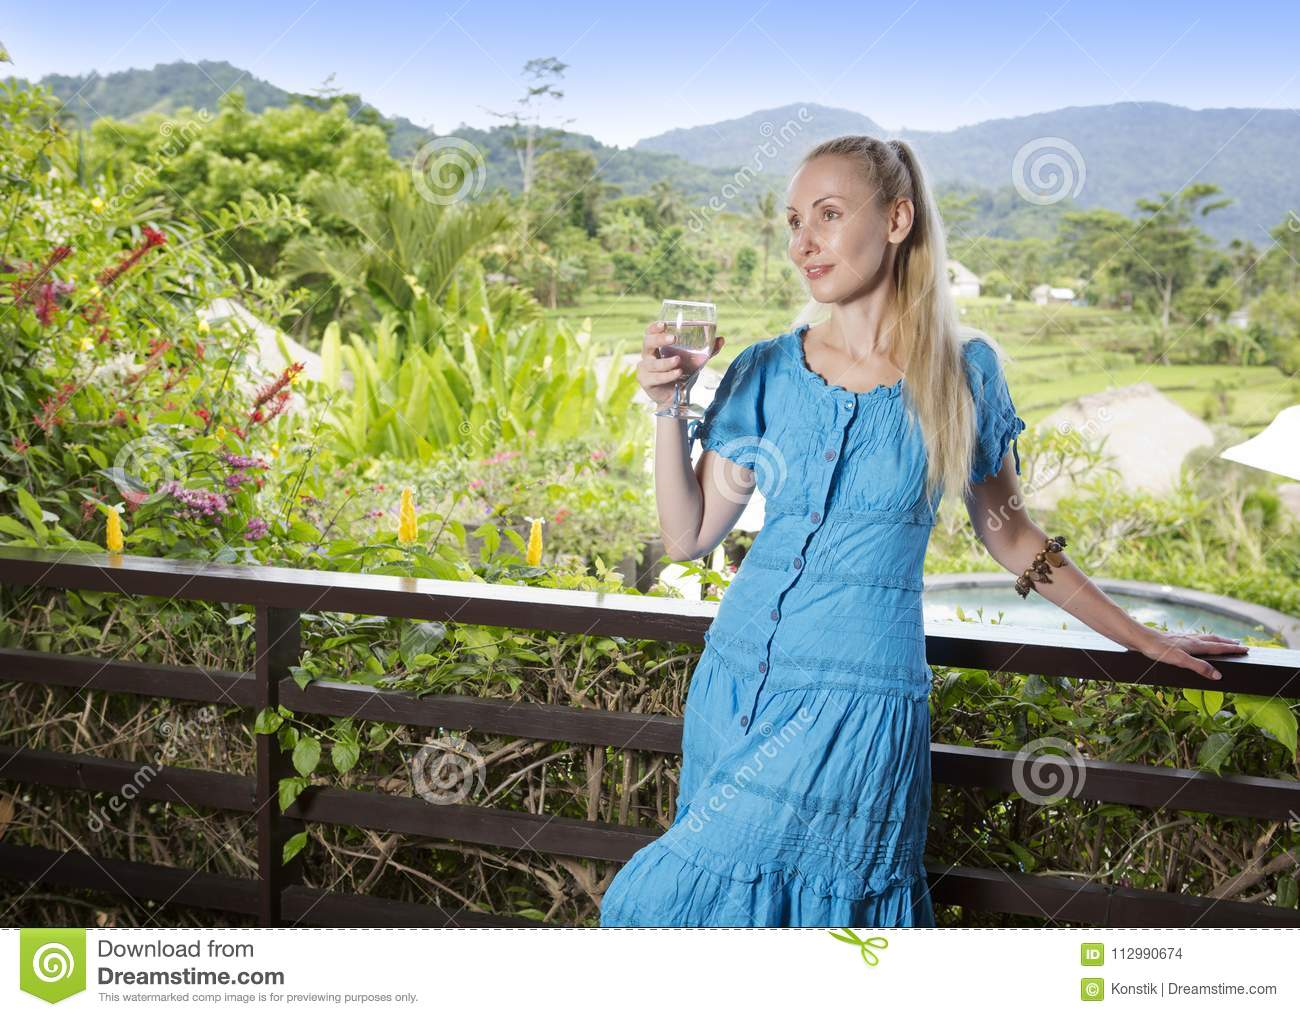 Young beautiful woman in a long dress with a glass of wine looks at the tropical nature